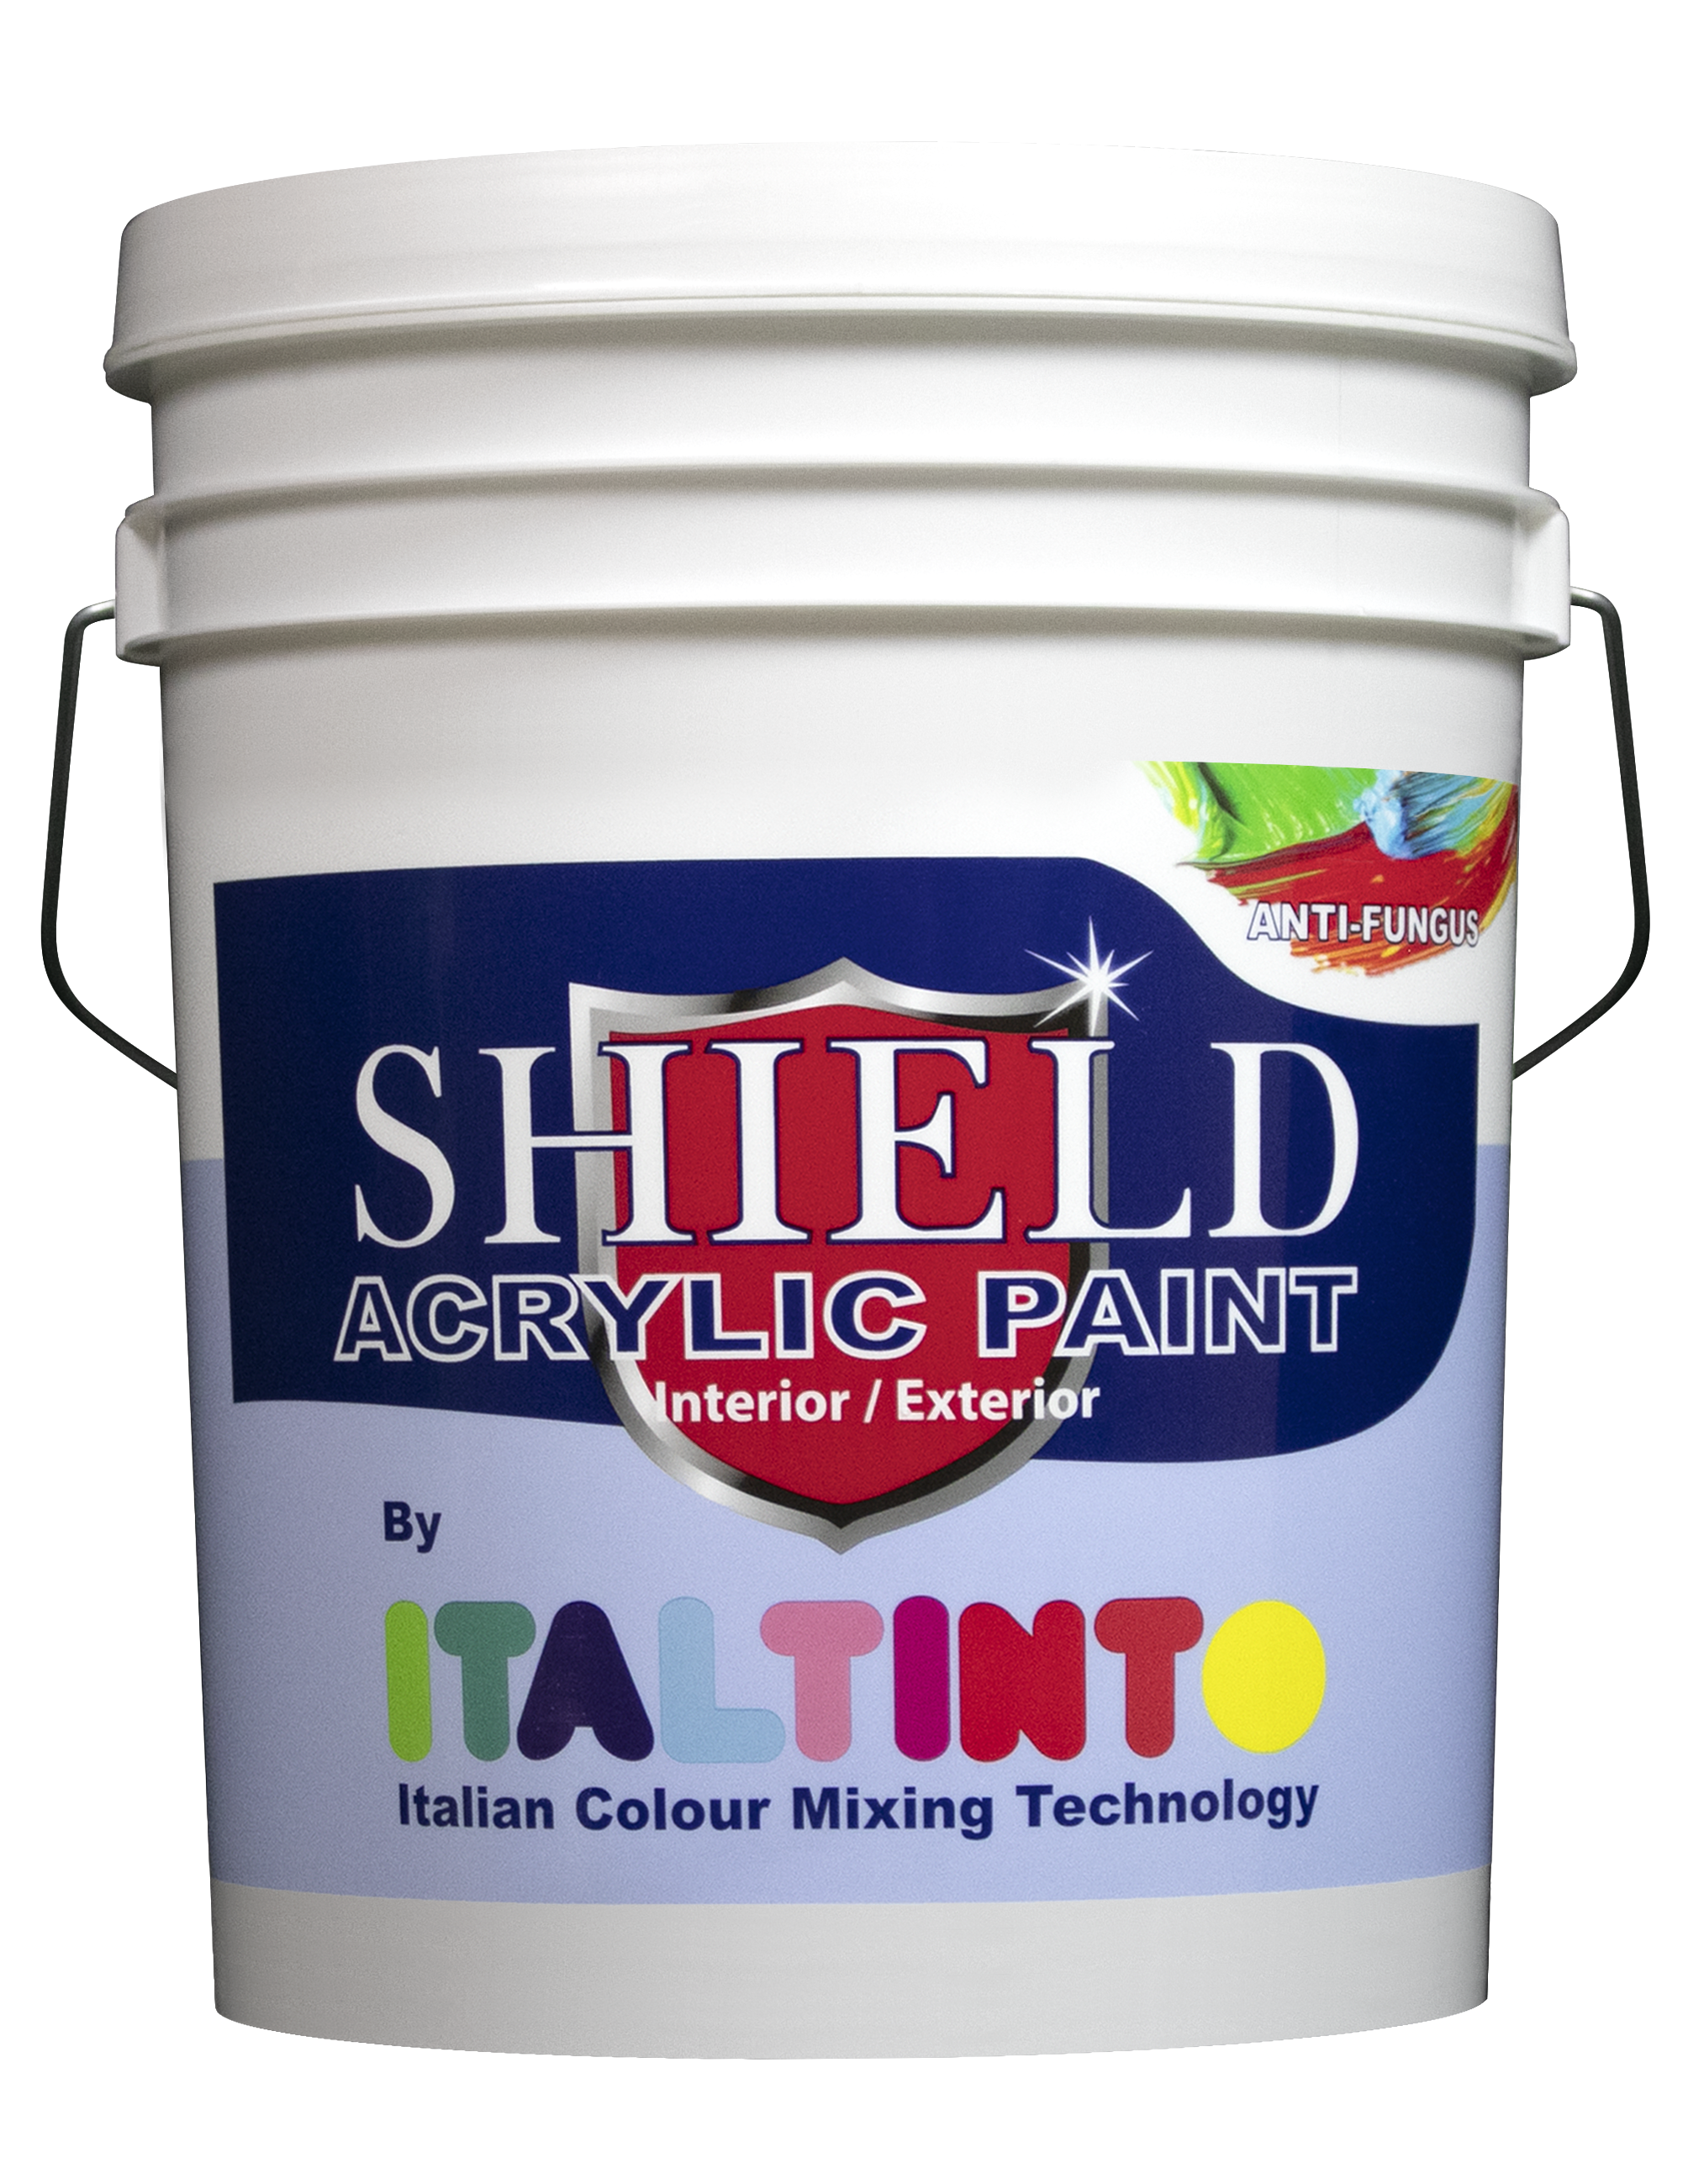 resources/assets/images/product_images/1582923991.Shield Acrylic Paint 20L.png